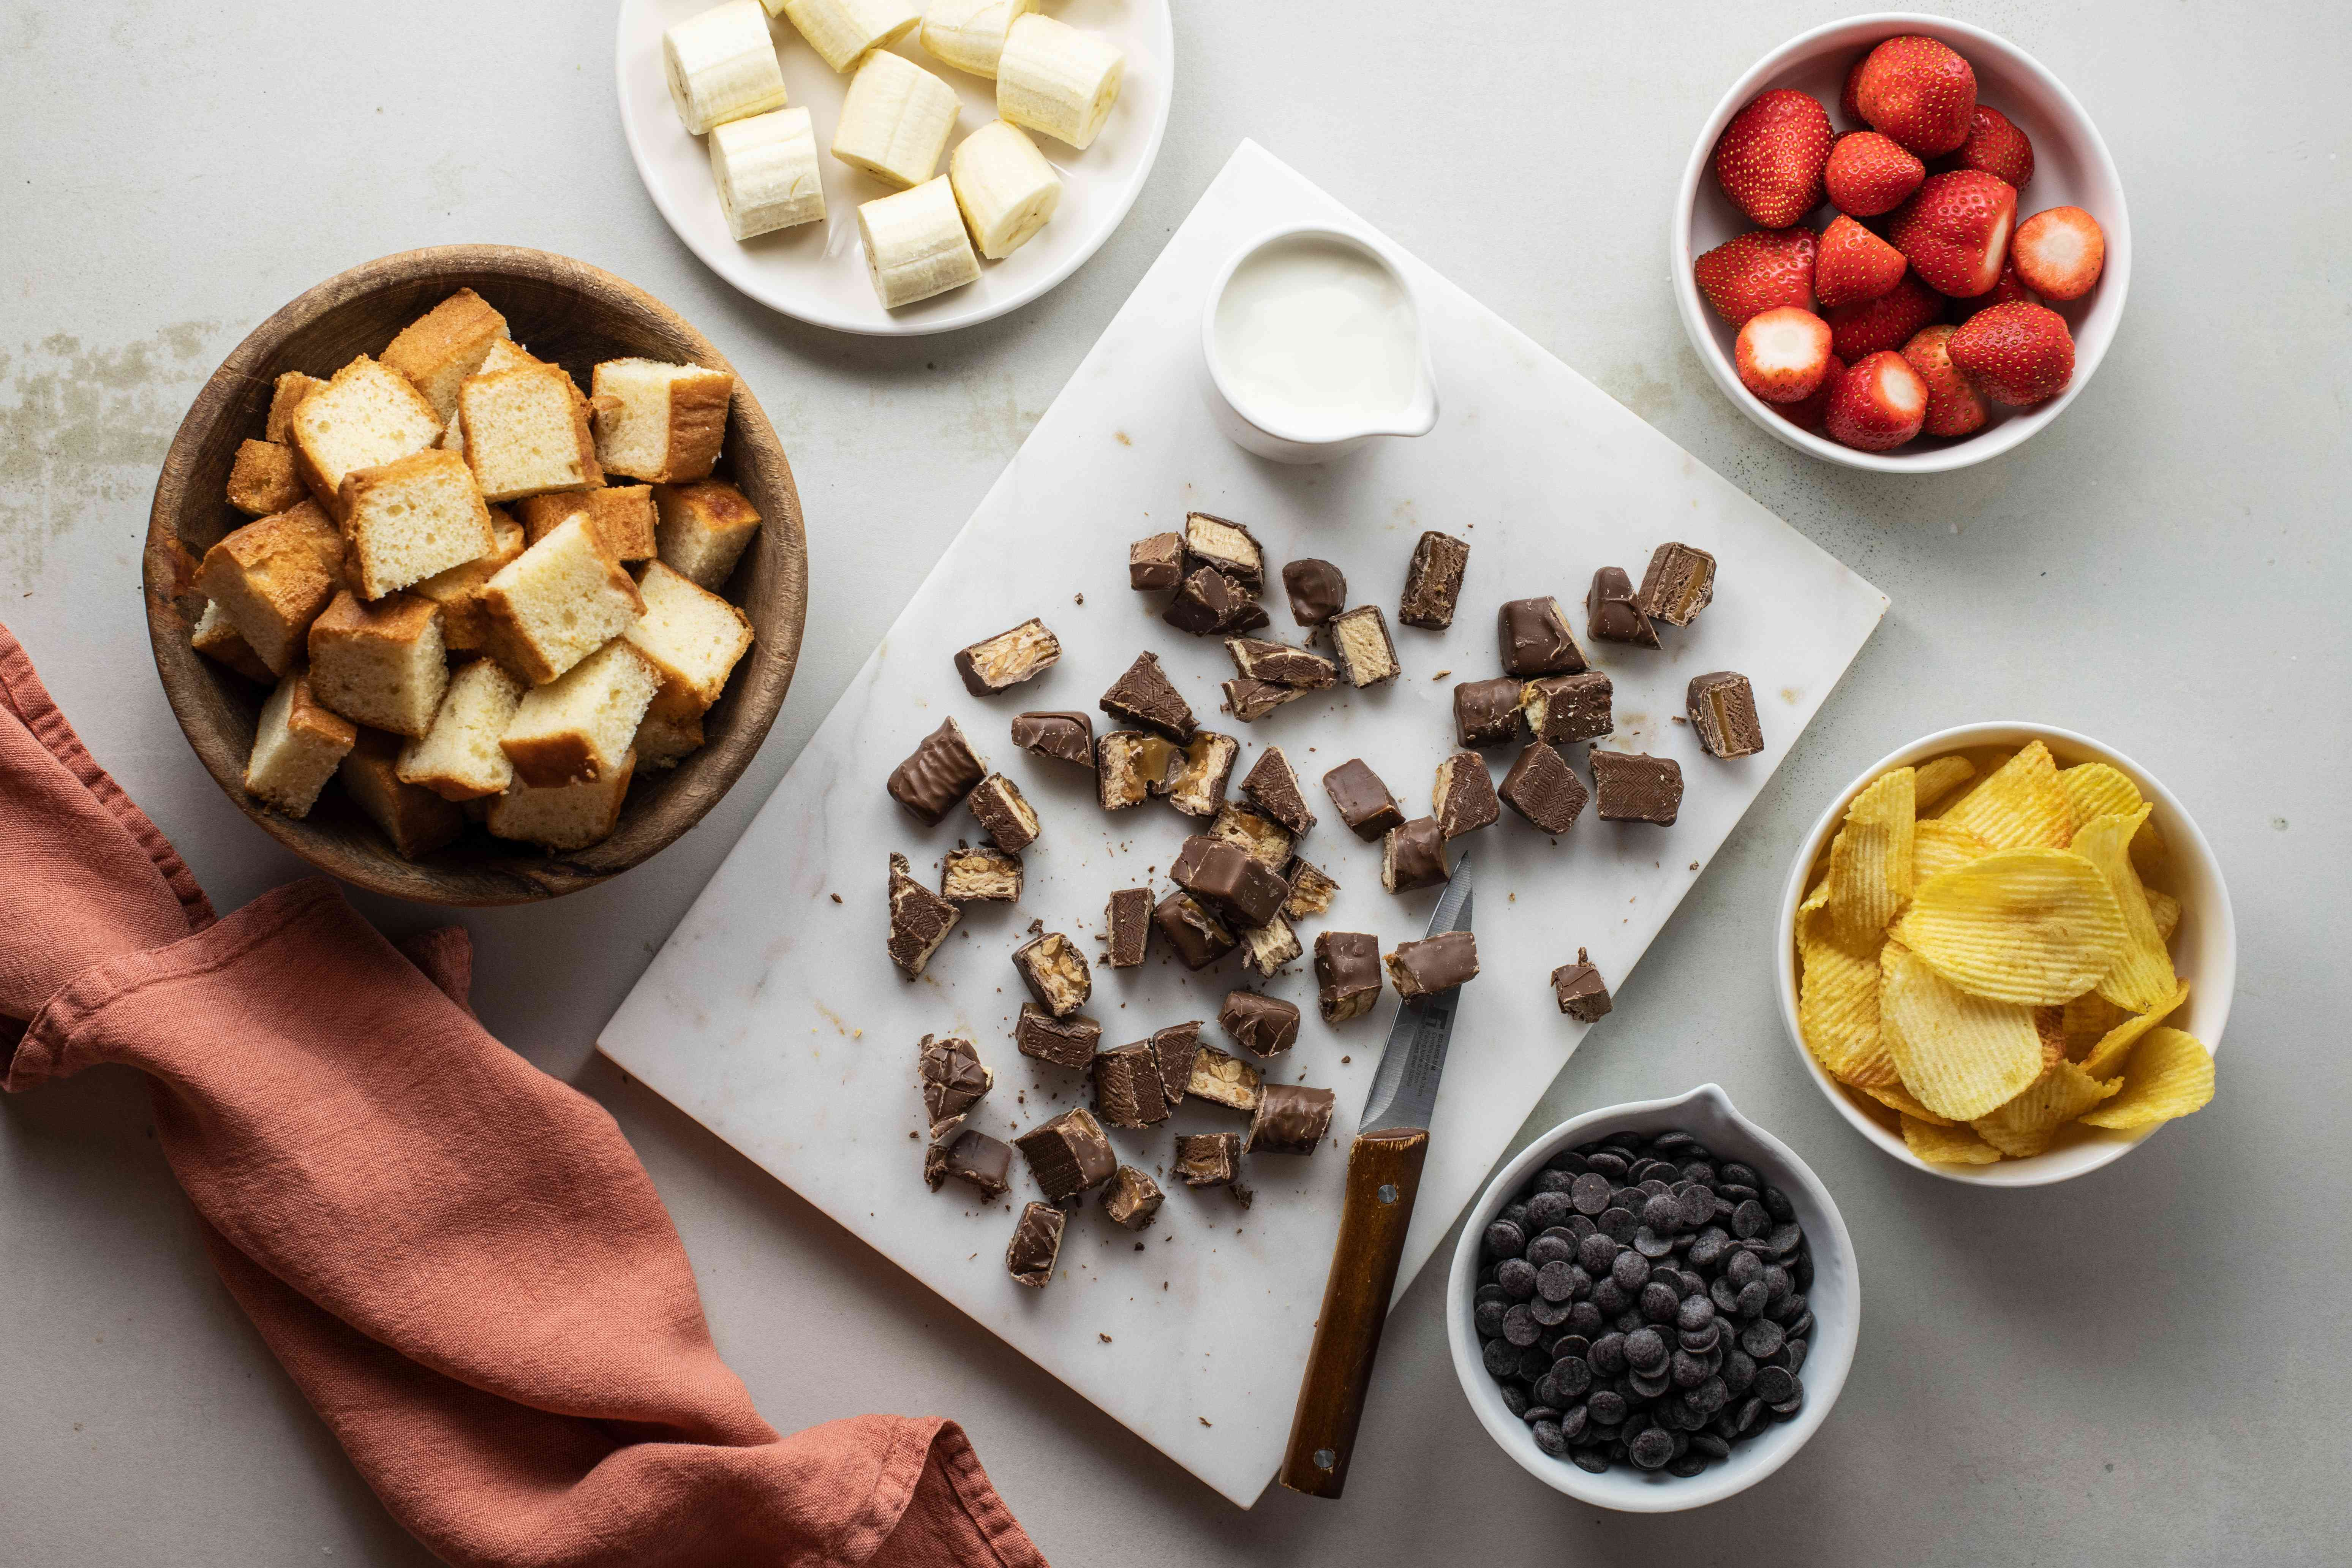 Ingredients for Halloween candy fondue